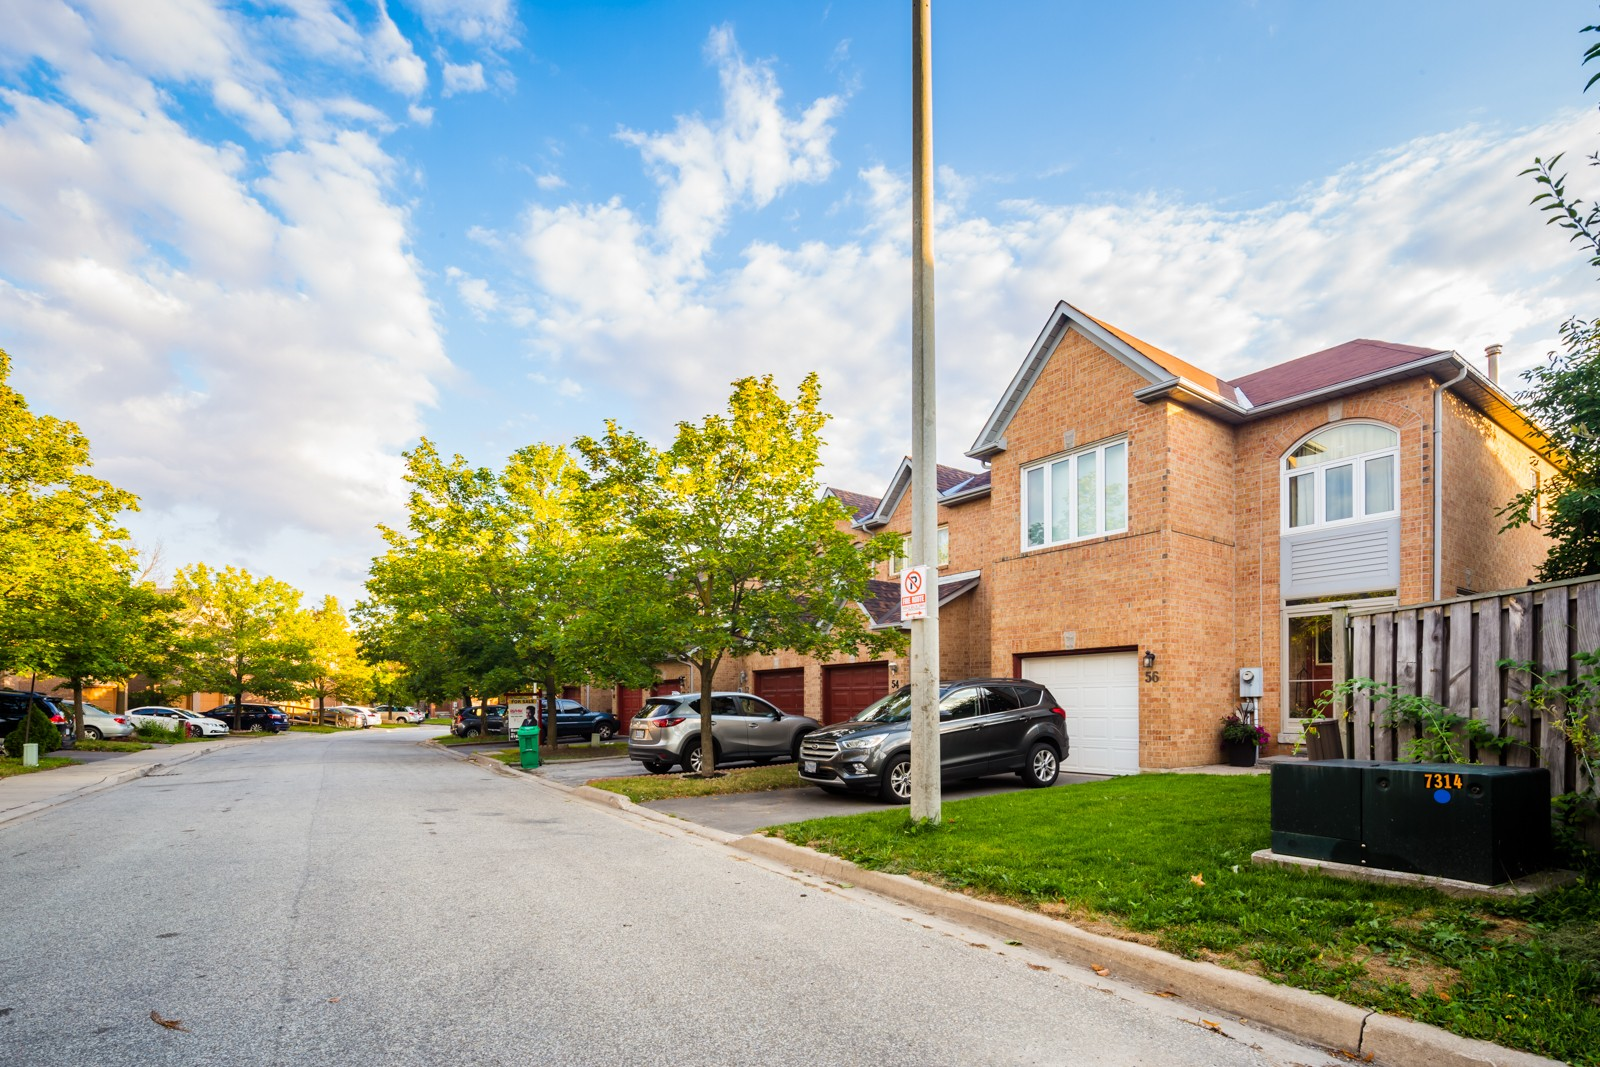 Goldenlight Circle Townhouses - II at 9 Brocklebank Crt, Brampton 1